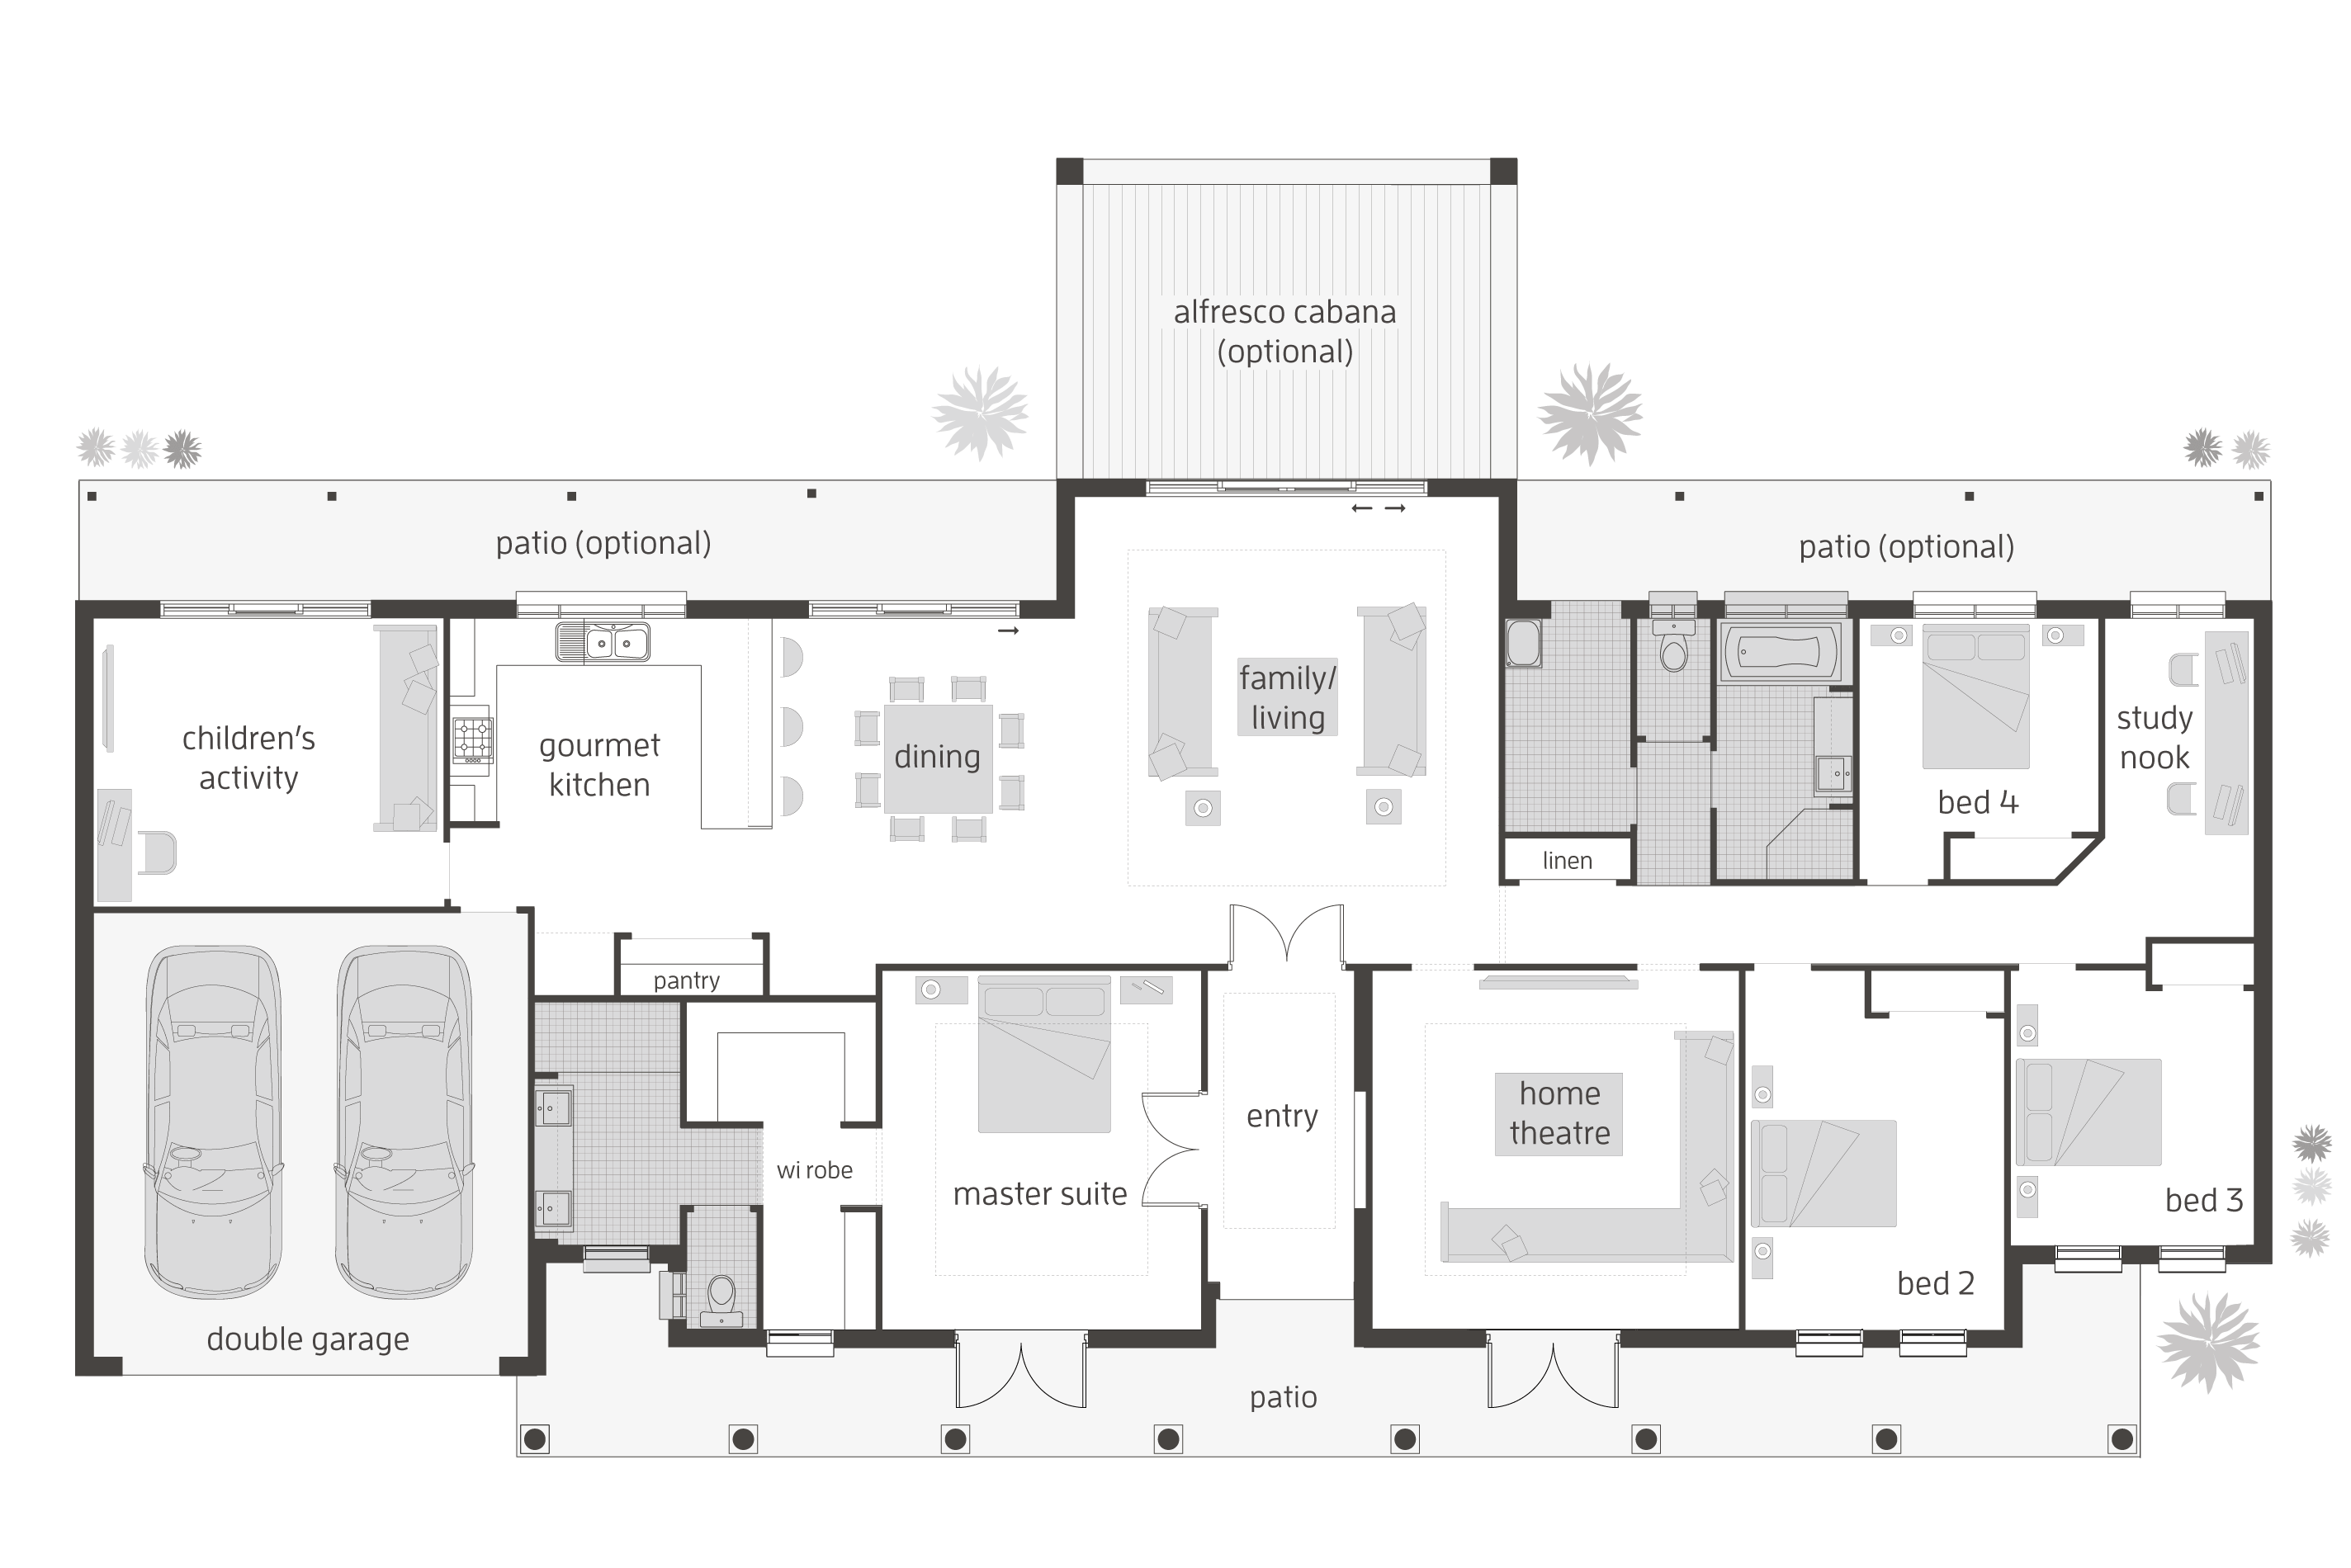 French Manor House Plans Floor Plan Friday 4 Bedroom Children S Activity Room